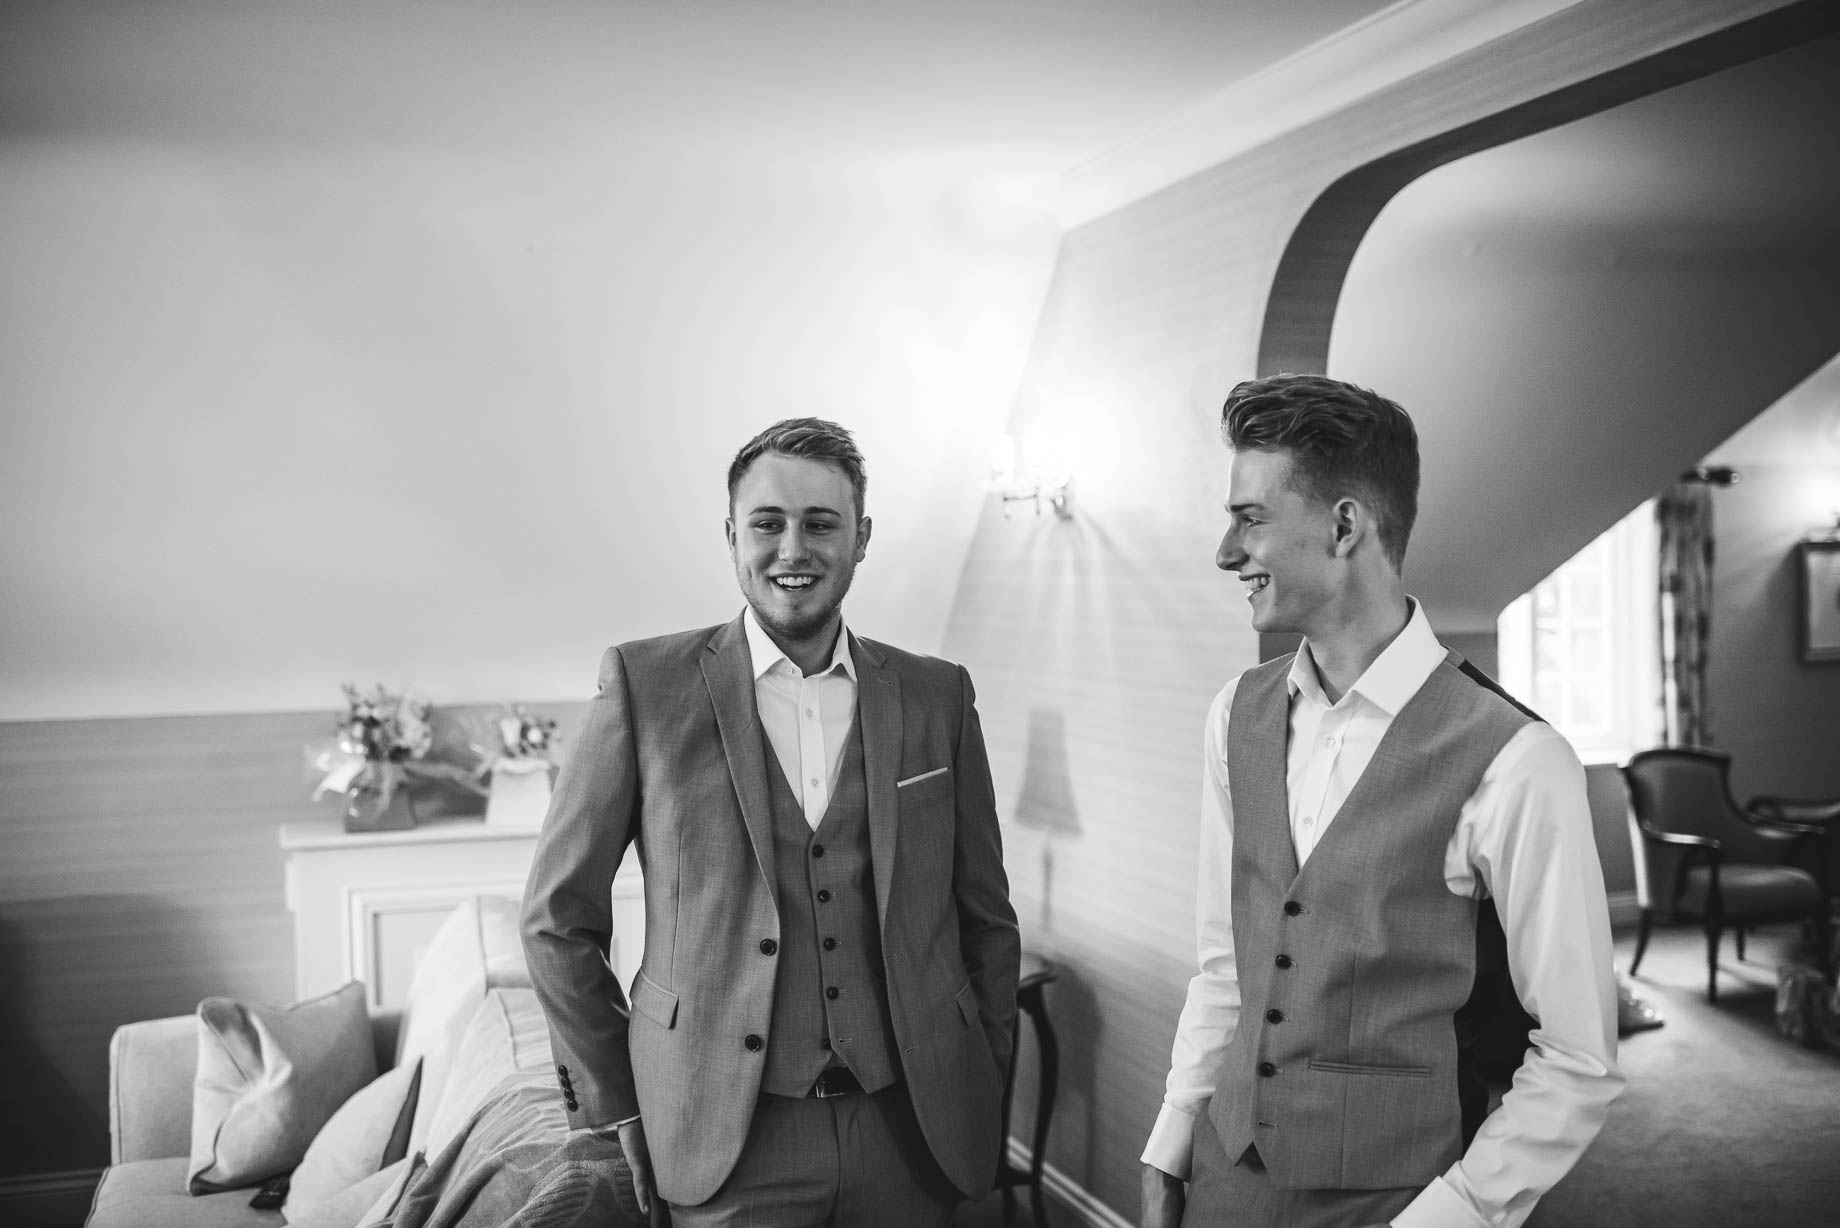 Luton Hoo wedding photography by Guy Collier Photography - Lauren and Gem (34 of 178)